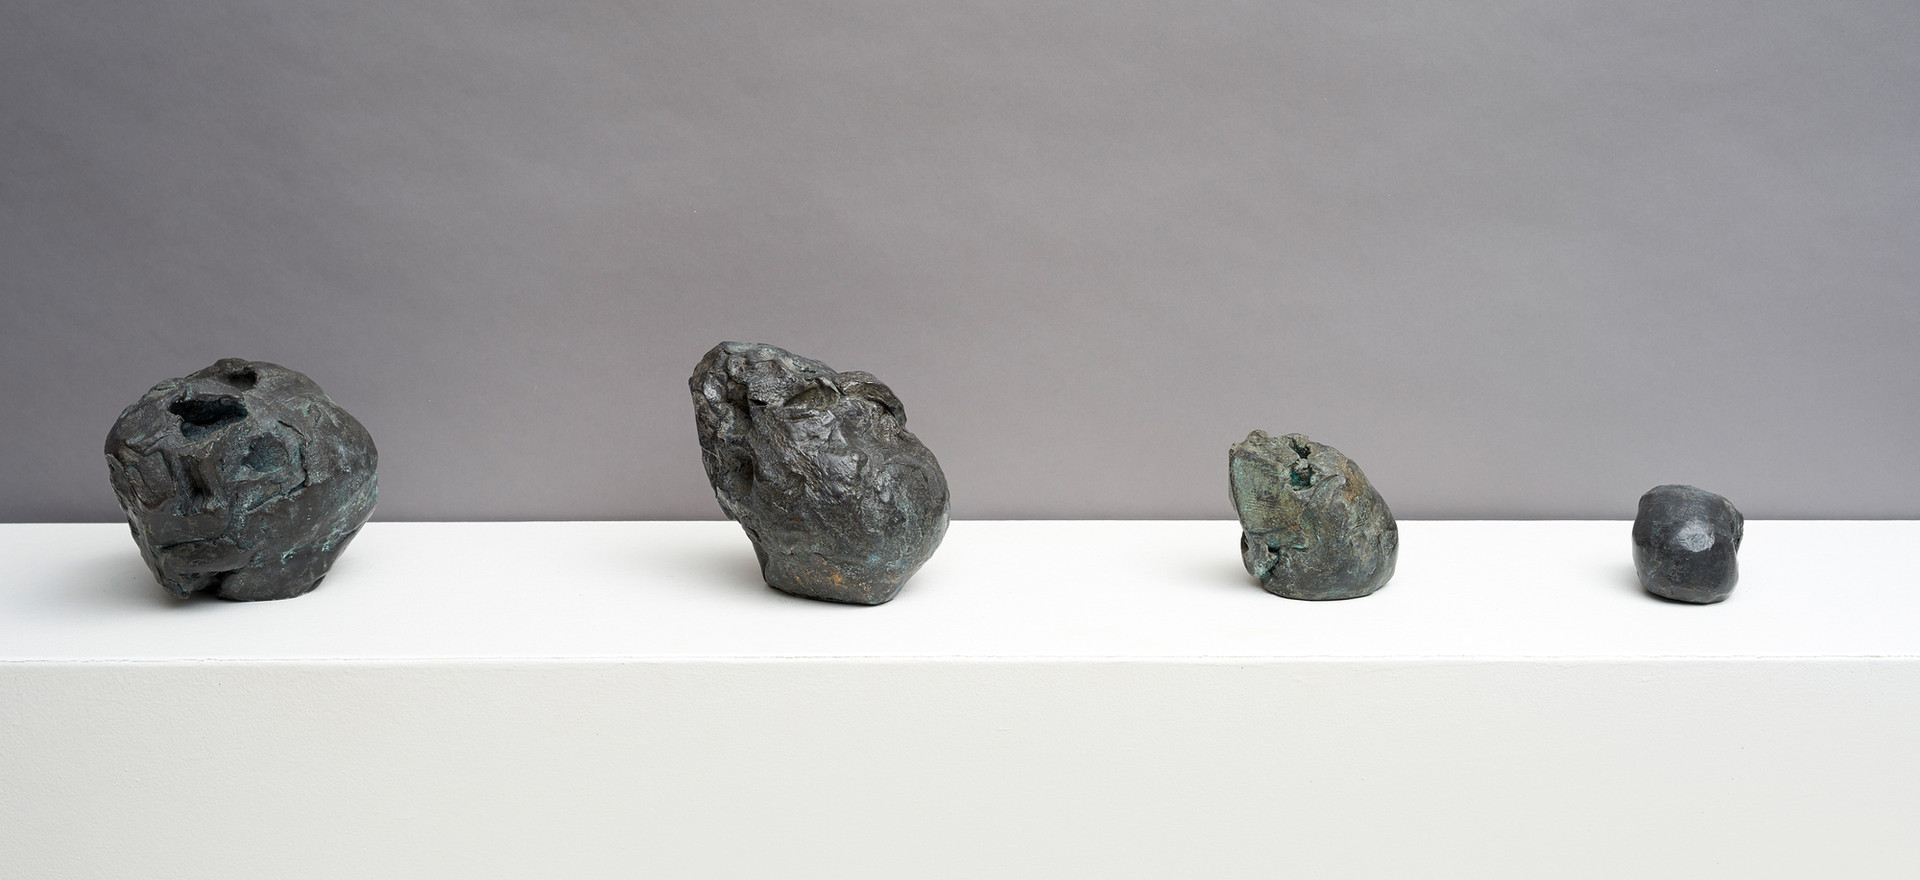 'Intimations of continuity', 2014, bronze, Left to right:  14 x 13.5 x 17 cm |16 x 11 x 14.5 cm |11 x 9.5 x 10 cm | 7 x 7 x 11 cm